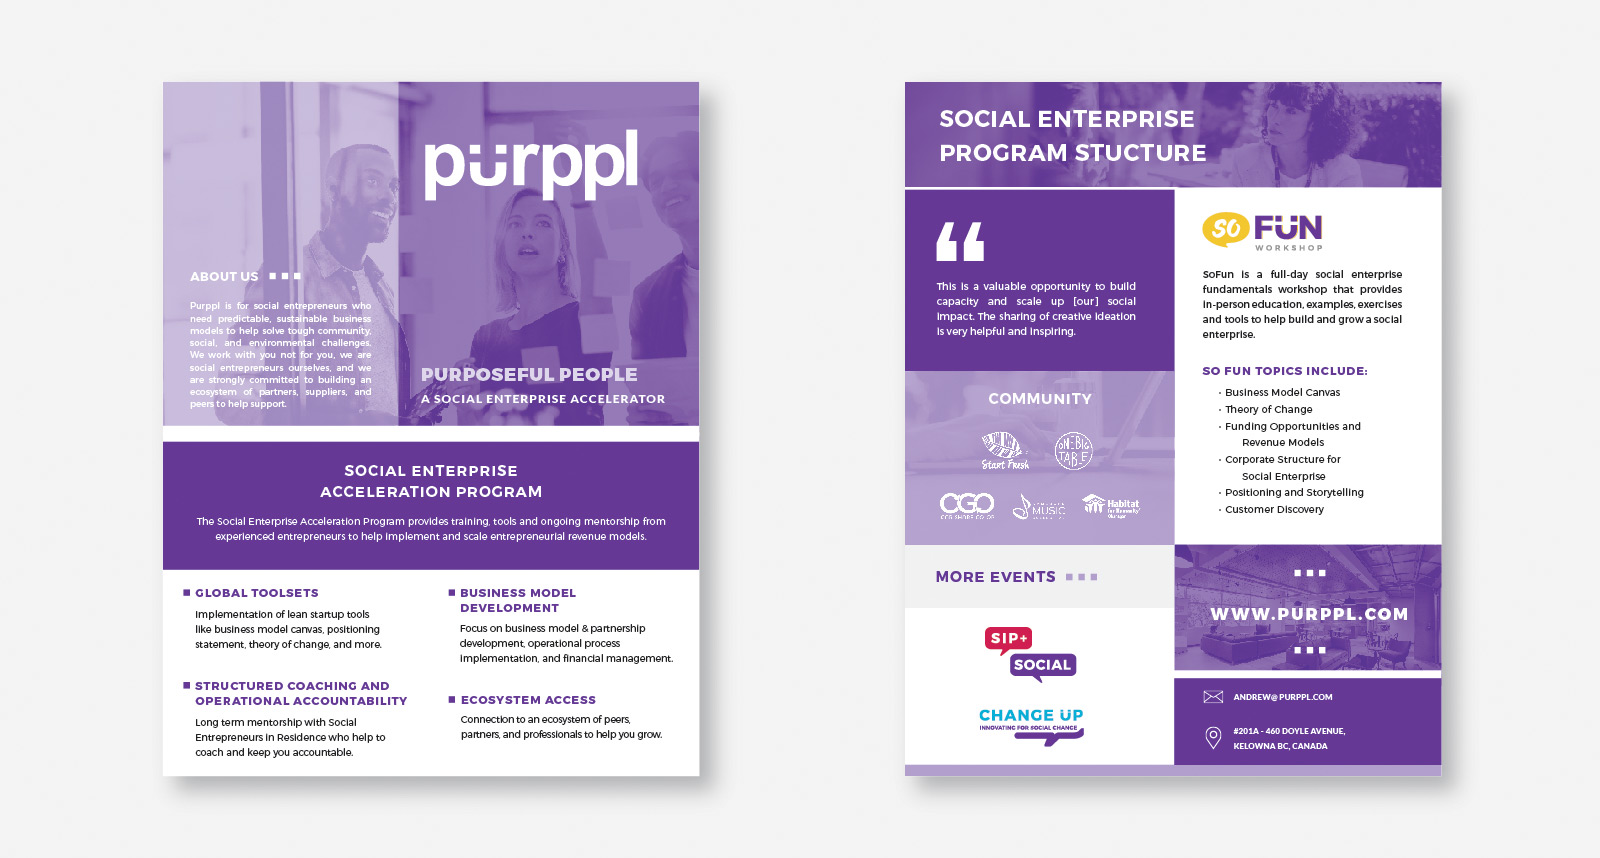 Purppl Print Assets created by Catalyst Marketing